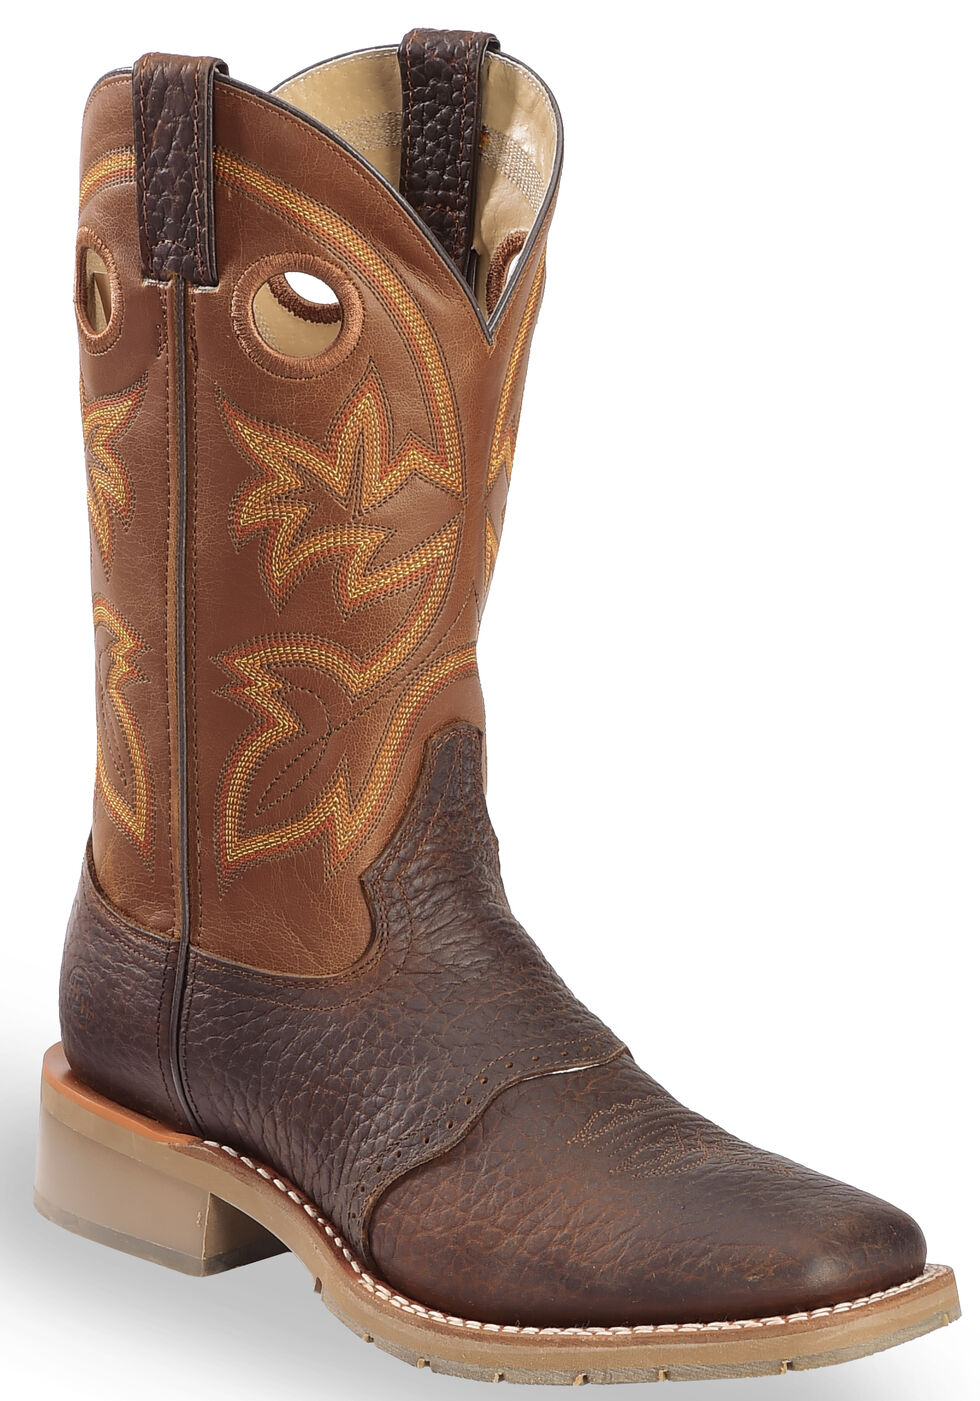 Double H Canyon Rust Saddle Vamp Western Work Boots - Square Toe, Rust, hi-res